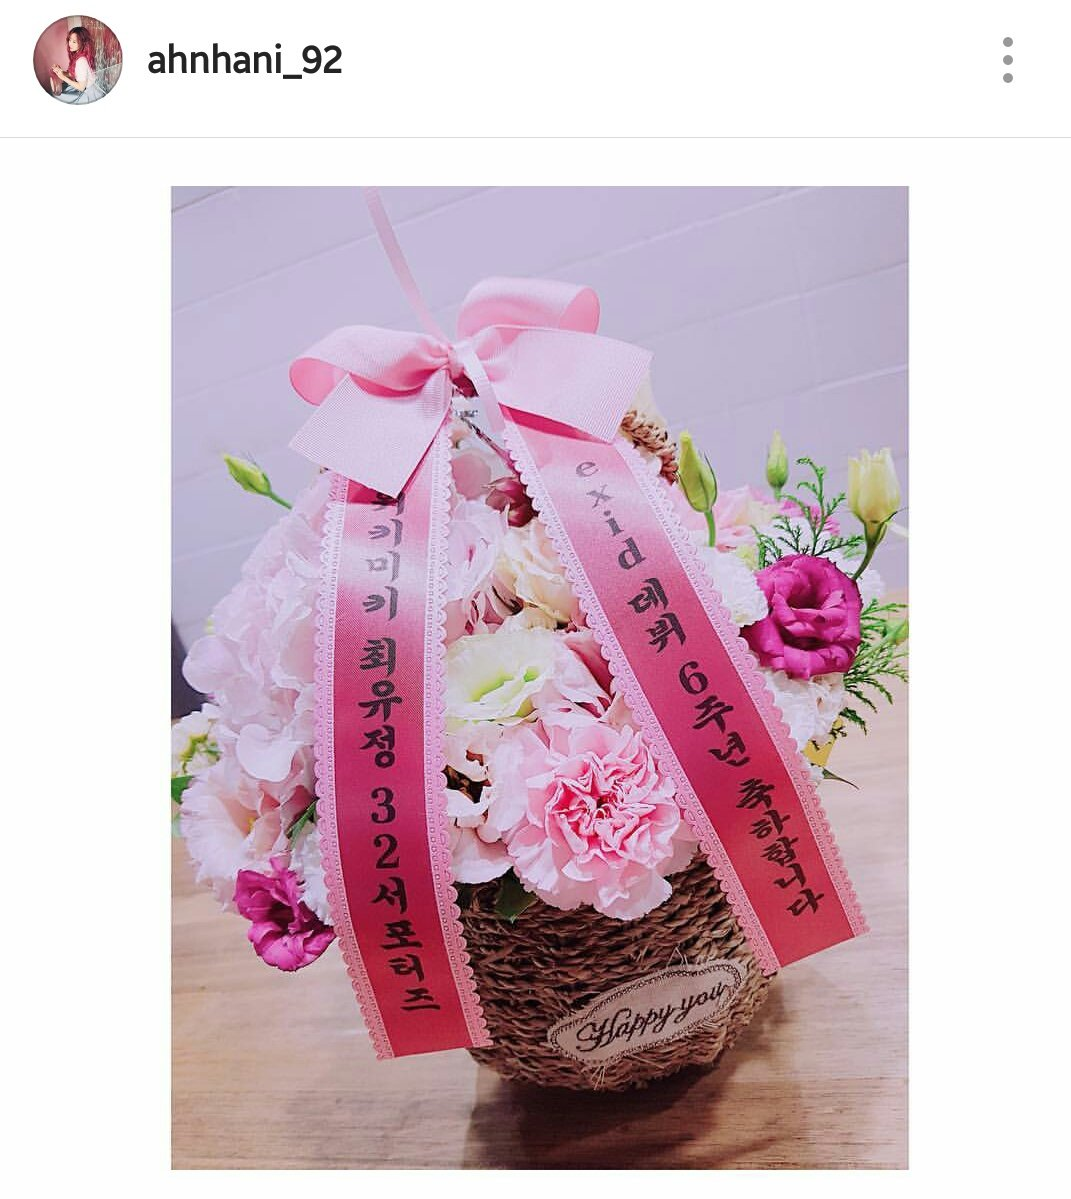 Weki Meki Yoojung 32 supporters (group) gave a congratulatory flower for EXID&#39;s 6th anniversary <br>http://pic.twitter.com/ISiIdb6vSZ